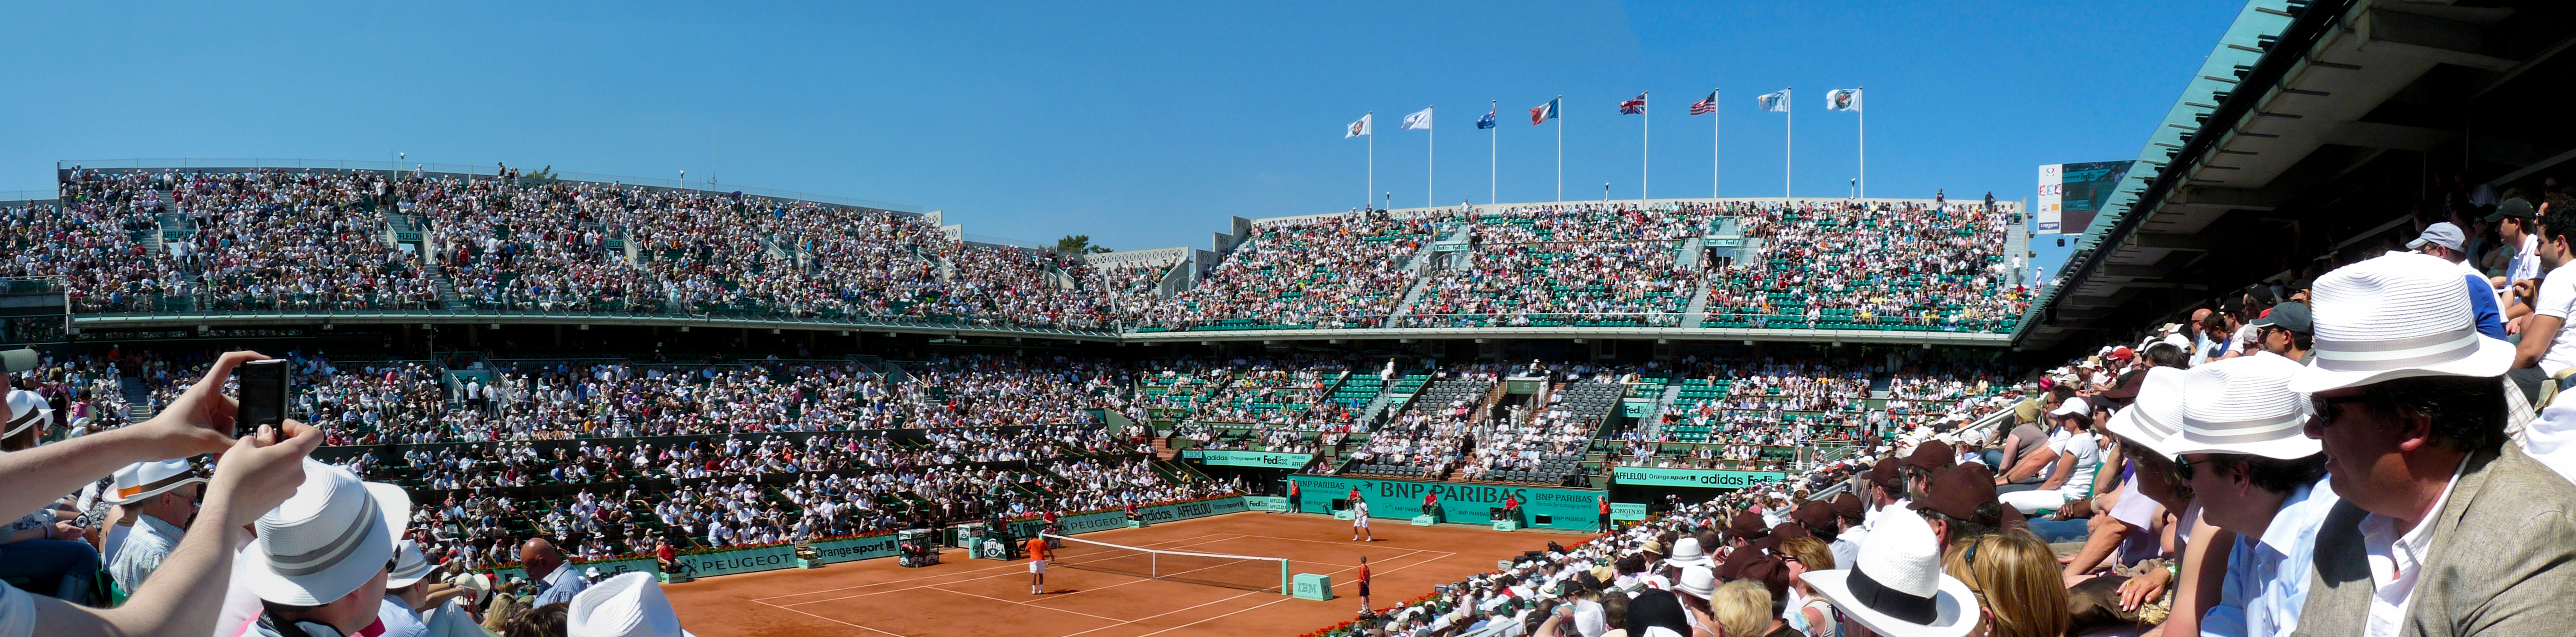 French Open - Wikipedia, the free encyclopedia